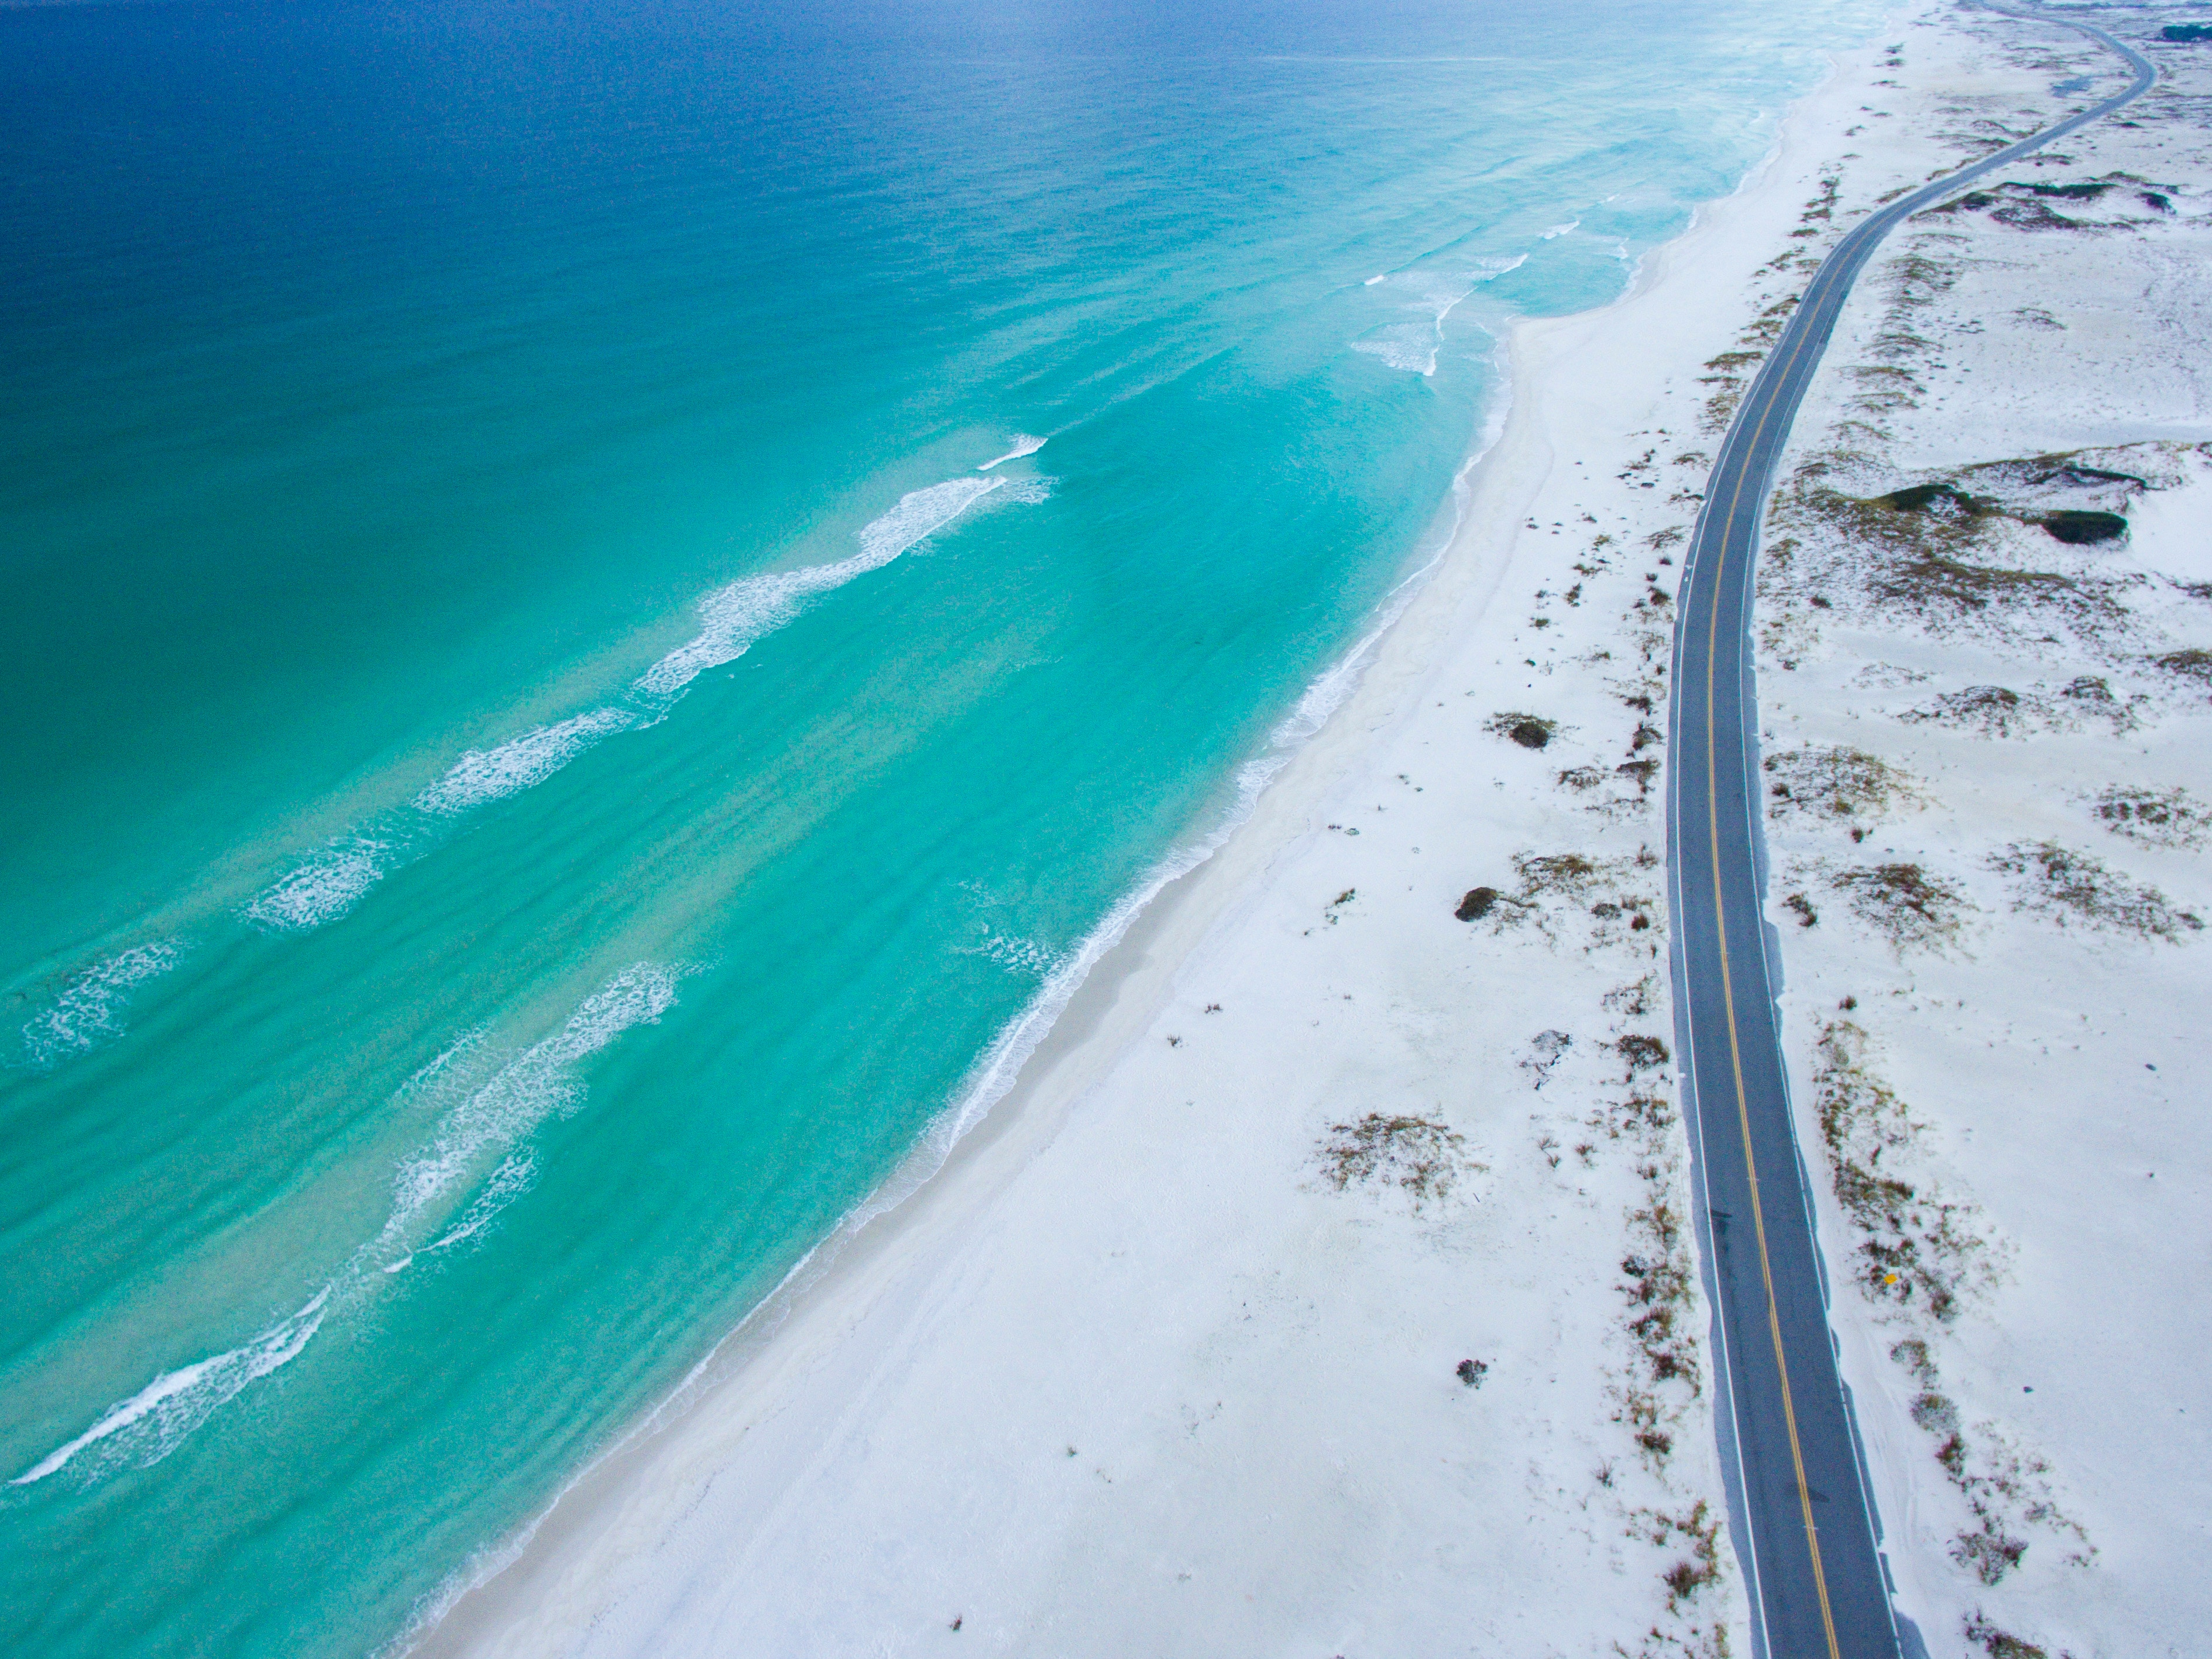 Image of the Florida's coastline.